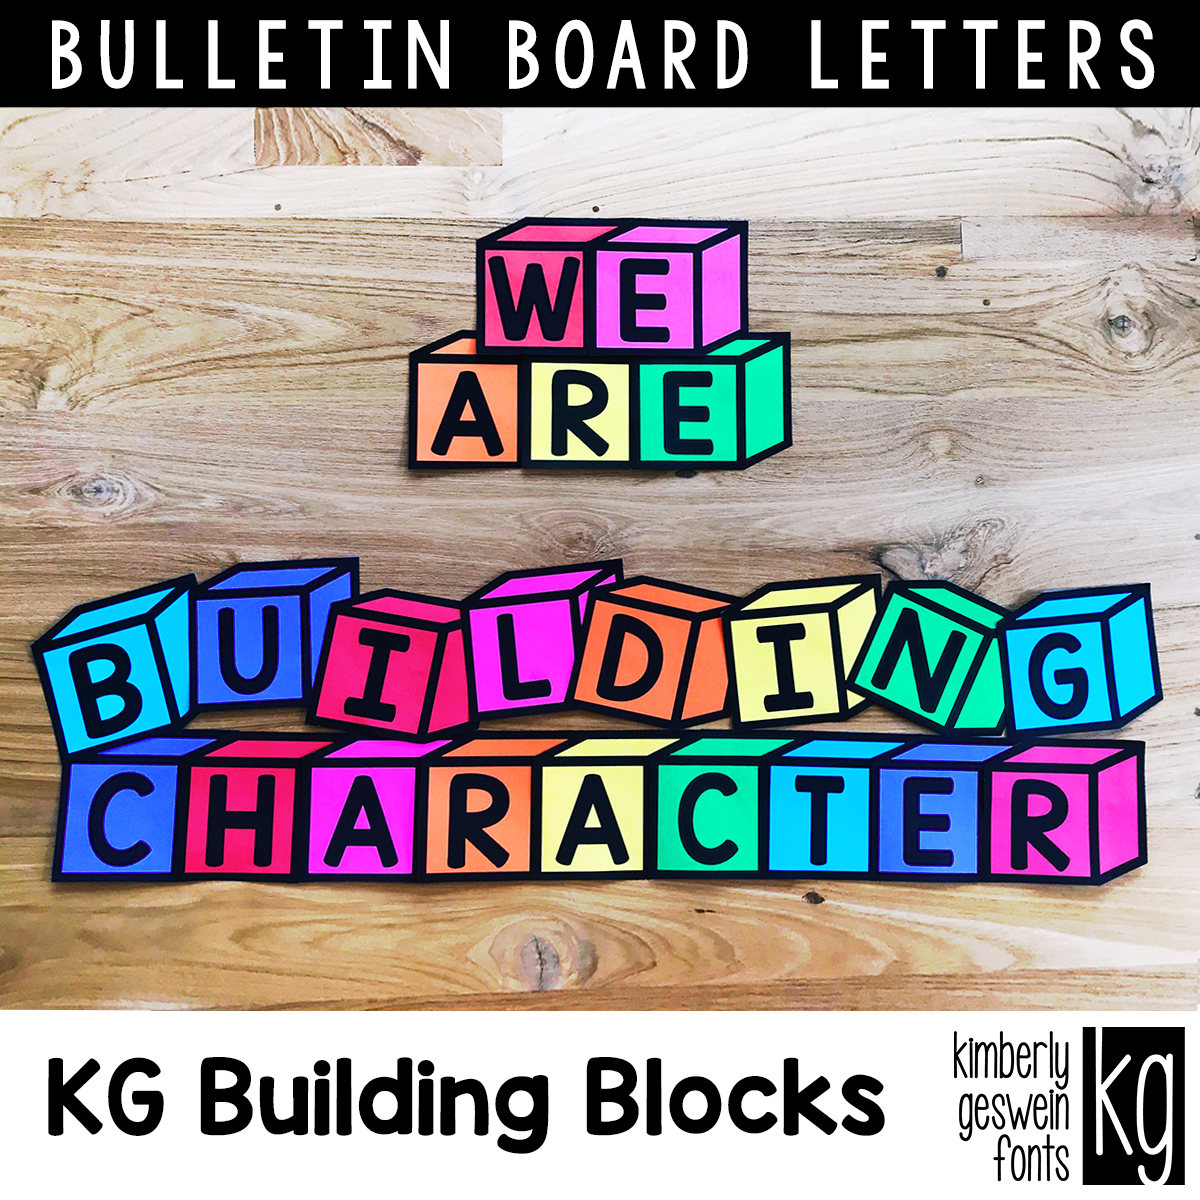 Kg Building Blocks Bulletin Board Letters No Color Ink Needed Just Print On Colored Paper And Cu Bulletin Board Letters Cute Bulletin Boards Bulletin Boards